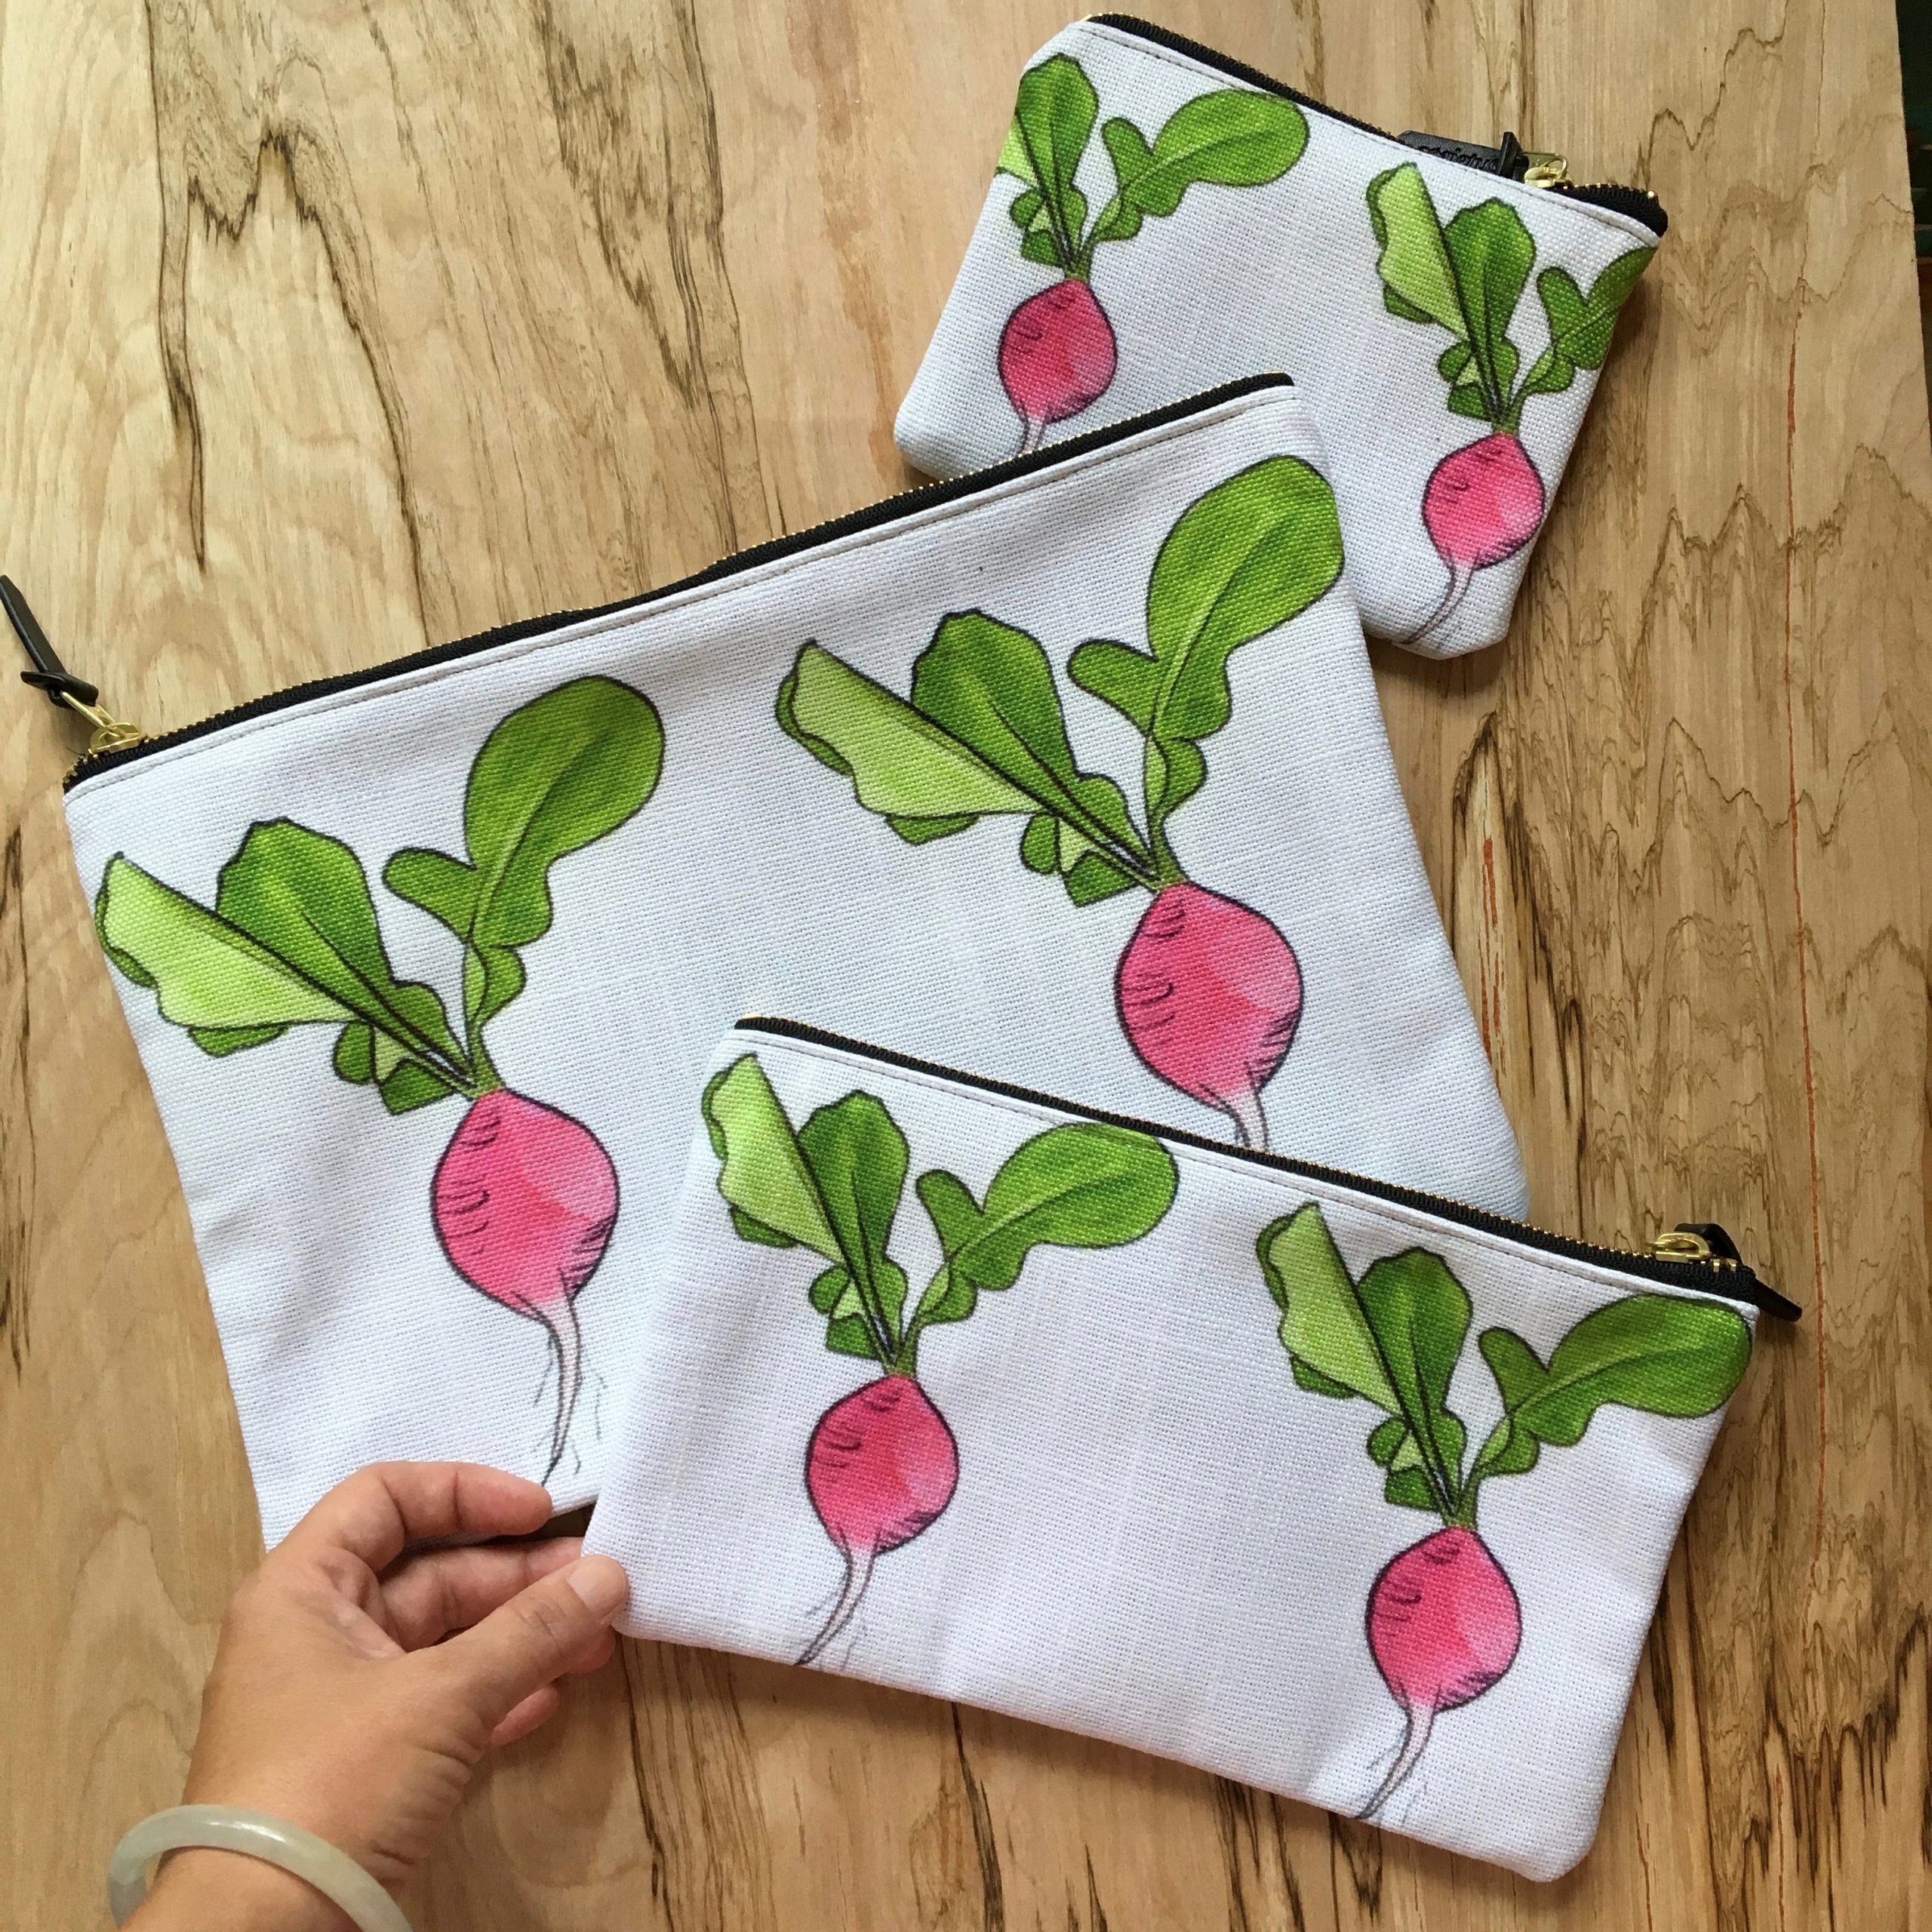 Signature radish pouches by Wings, Worms, and Wonder